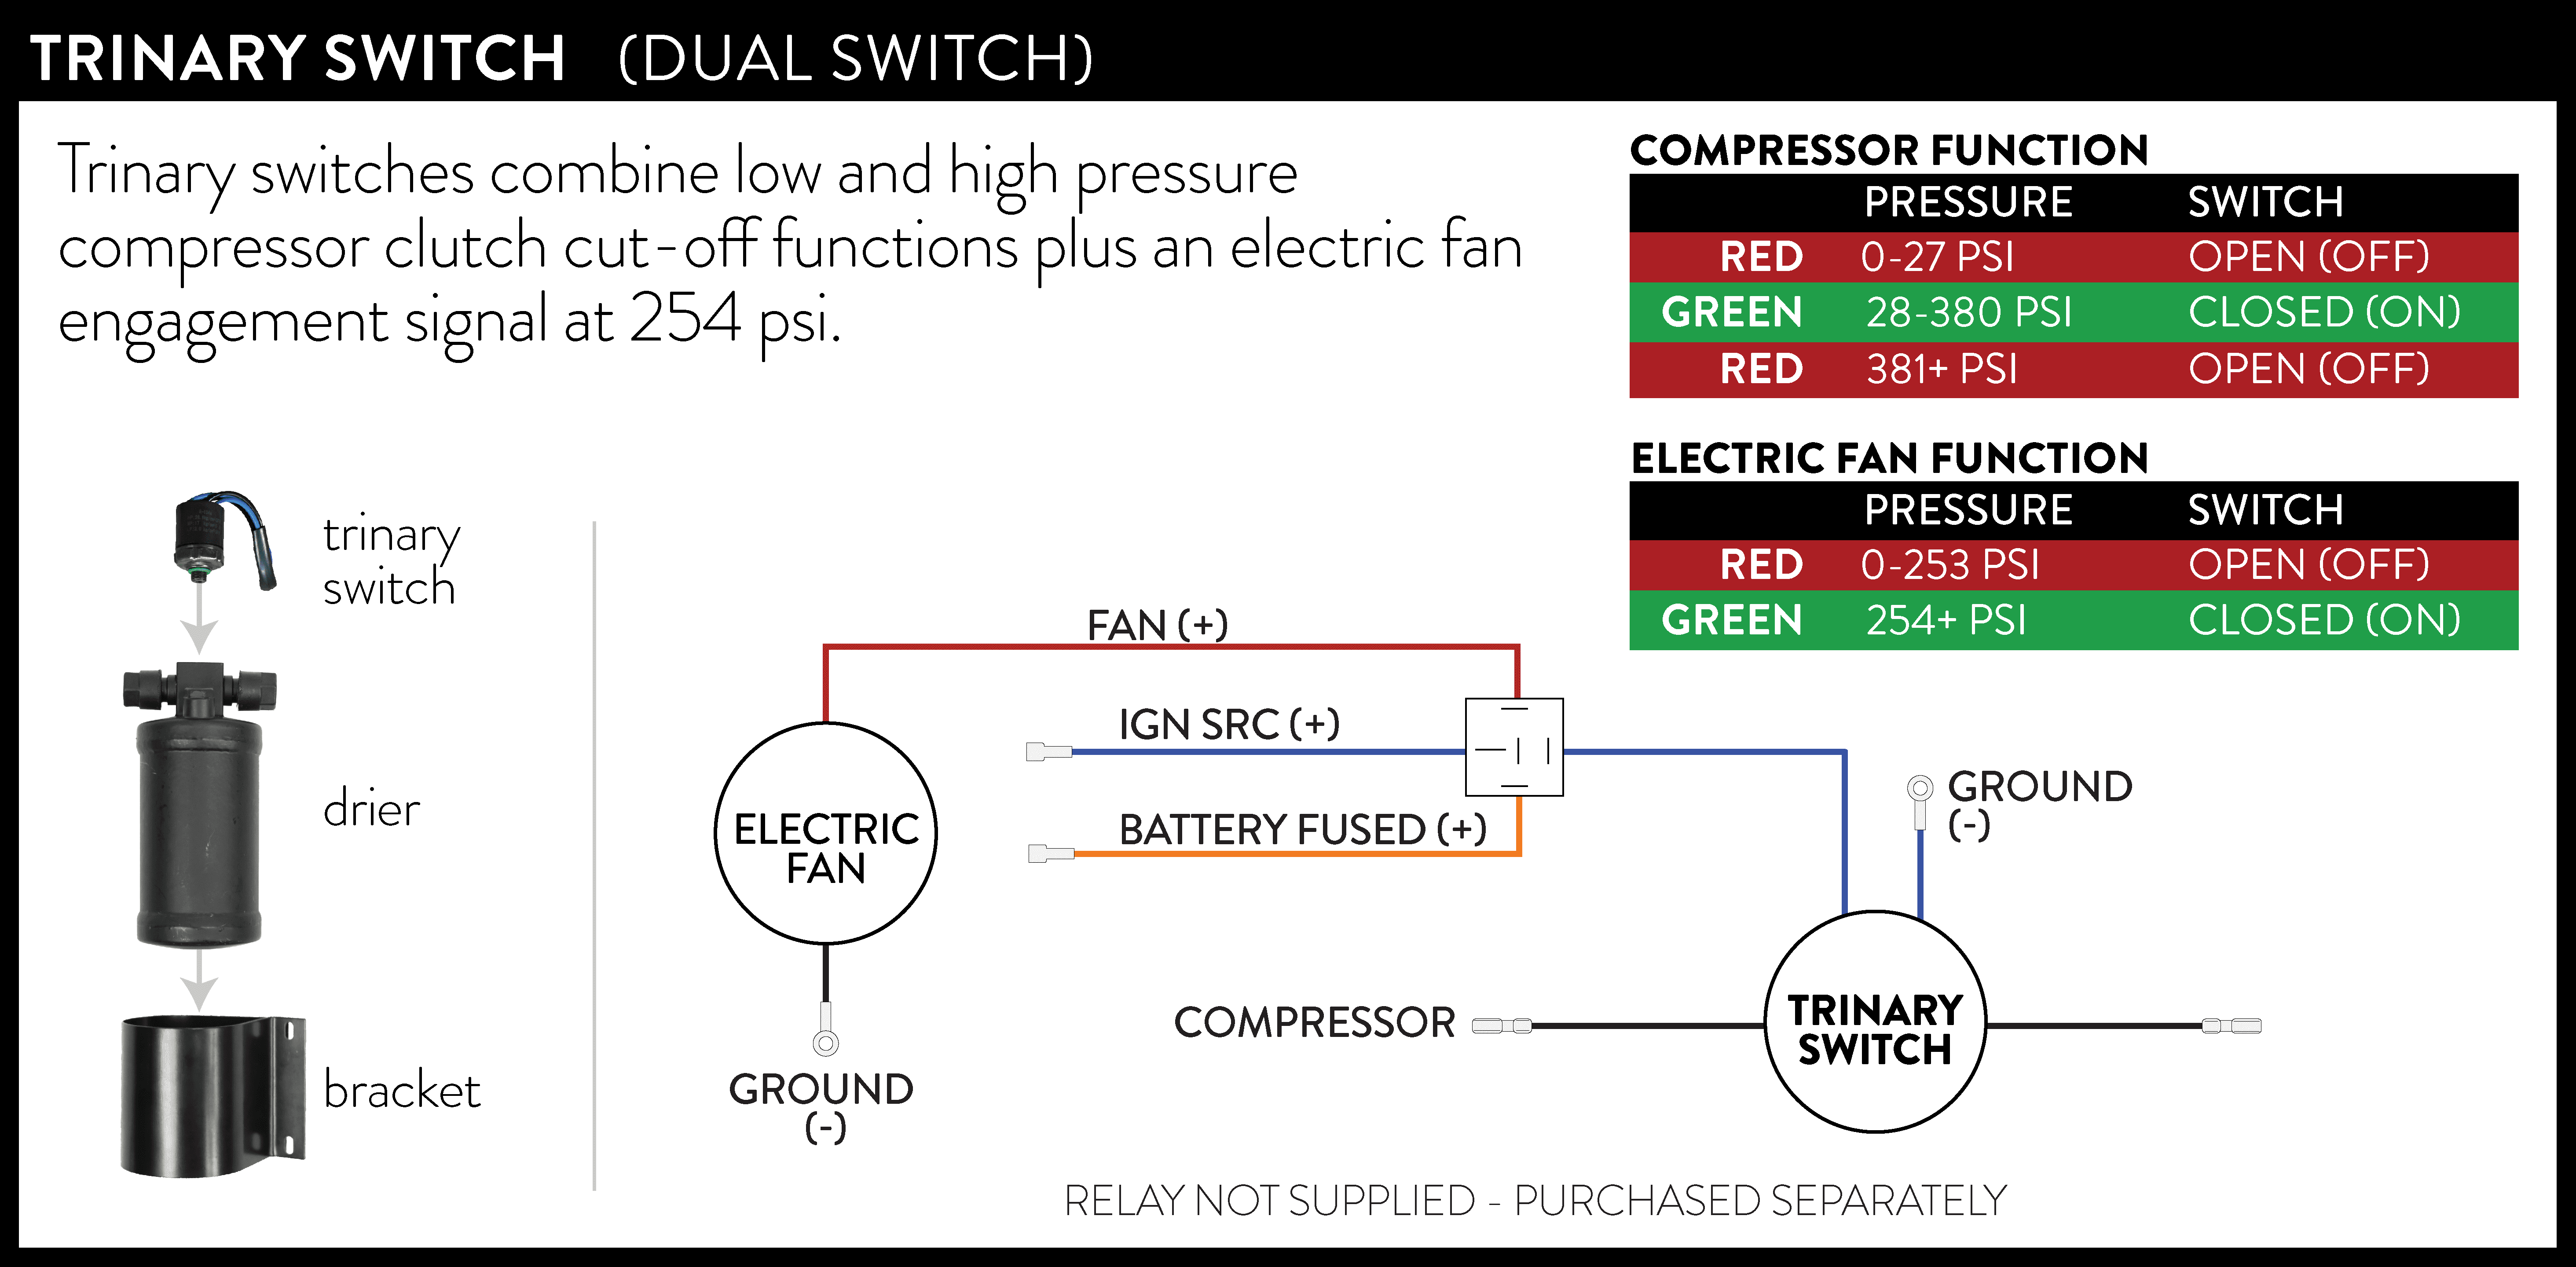 ENGINE COMPARTMENT SUPPORT TRINARY SWITCH